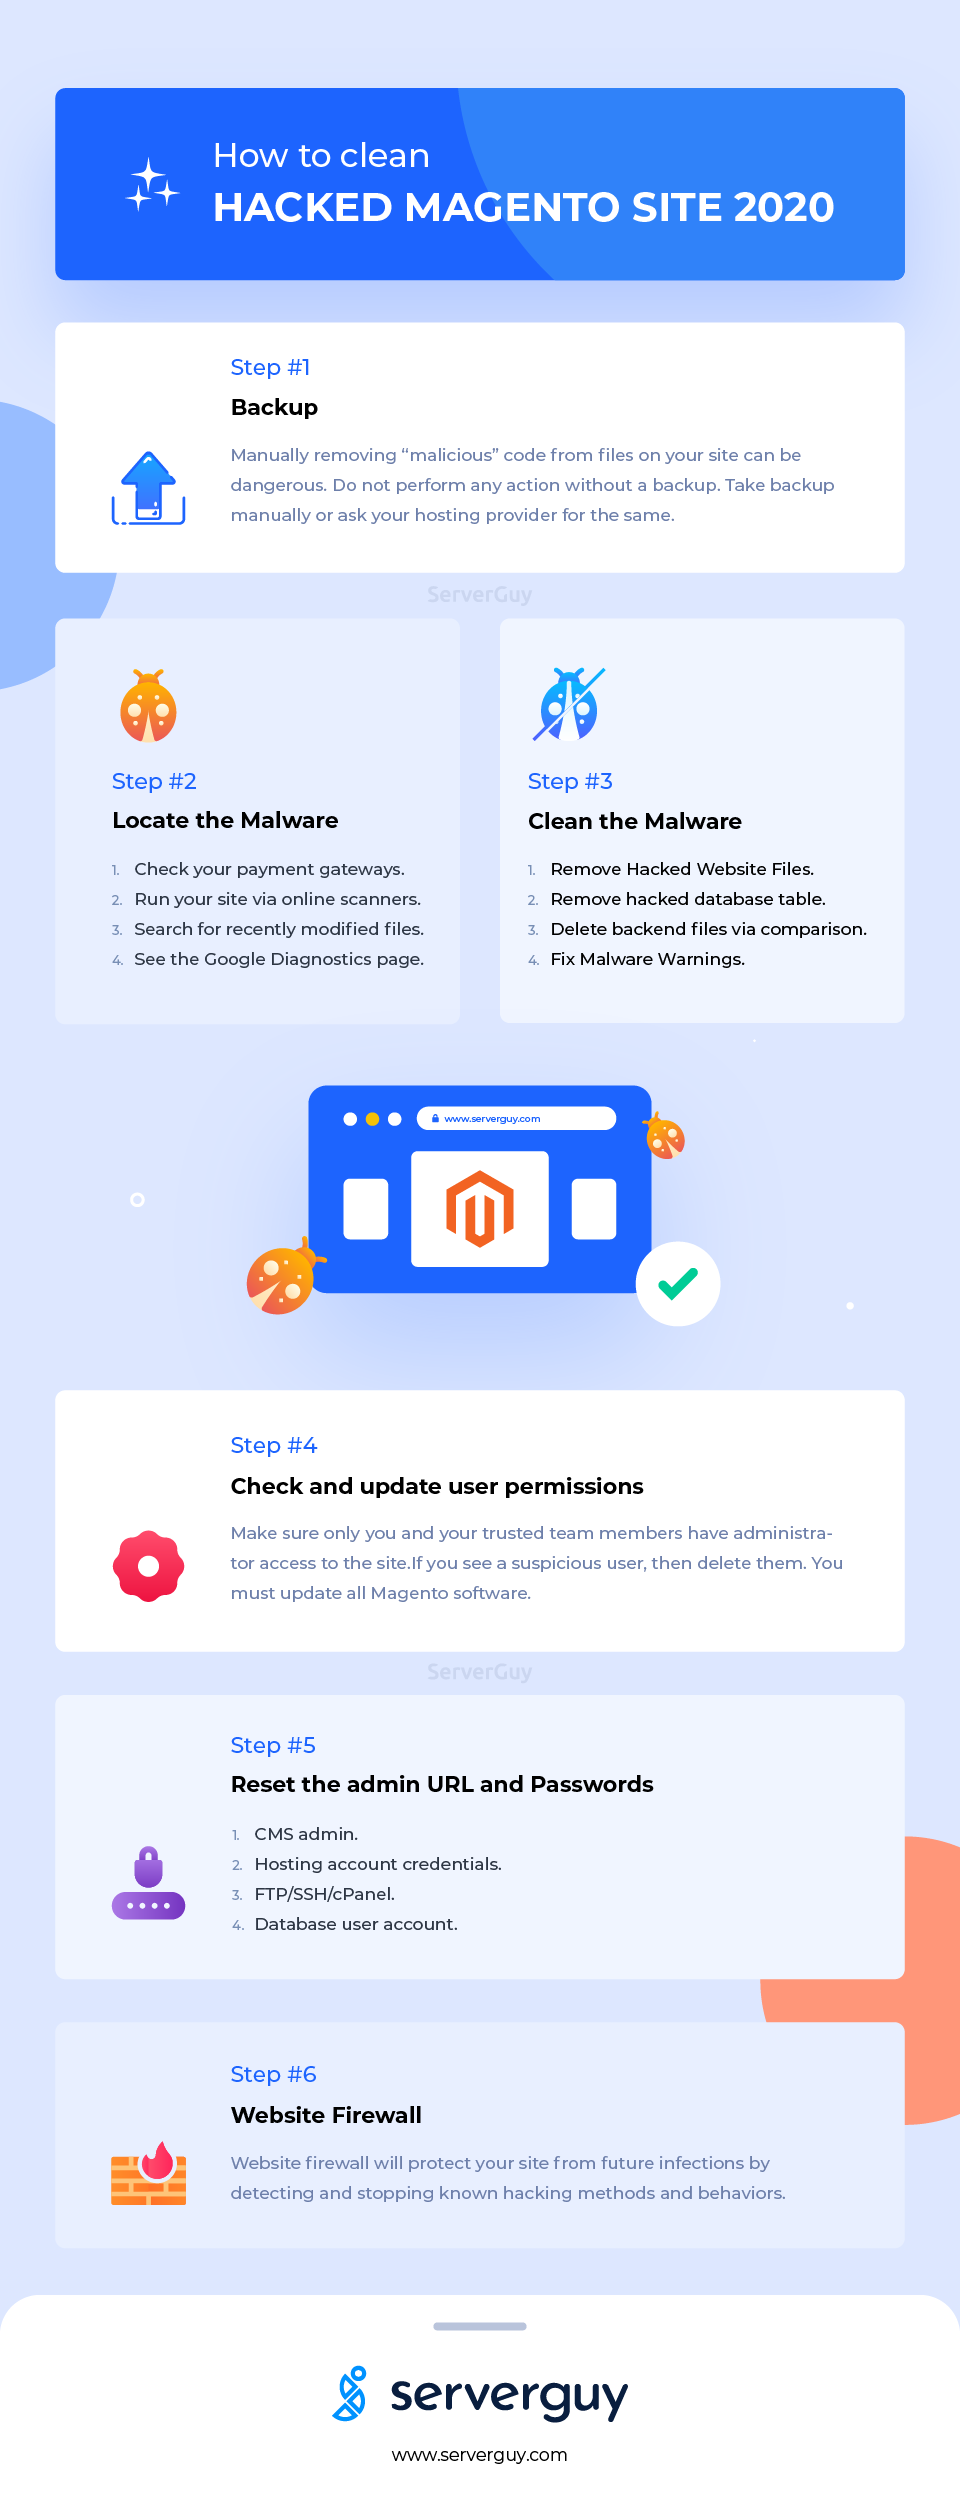 How to clean hacked Magento sites infographic